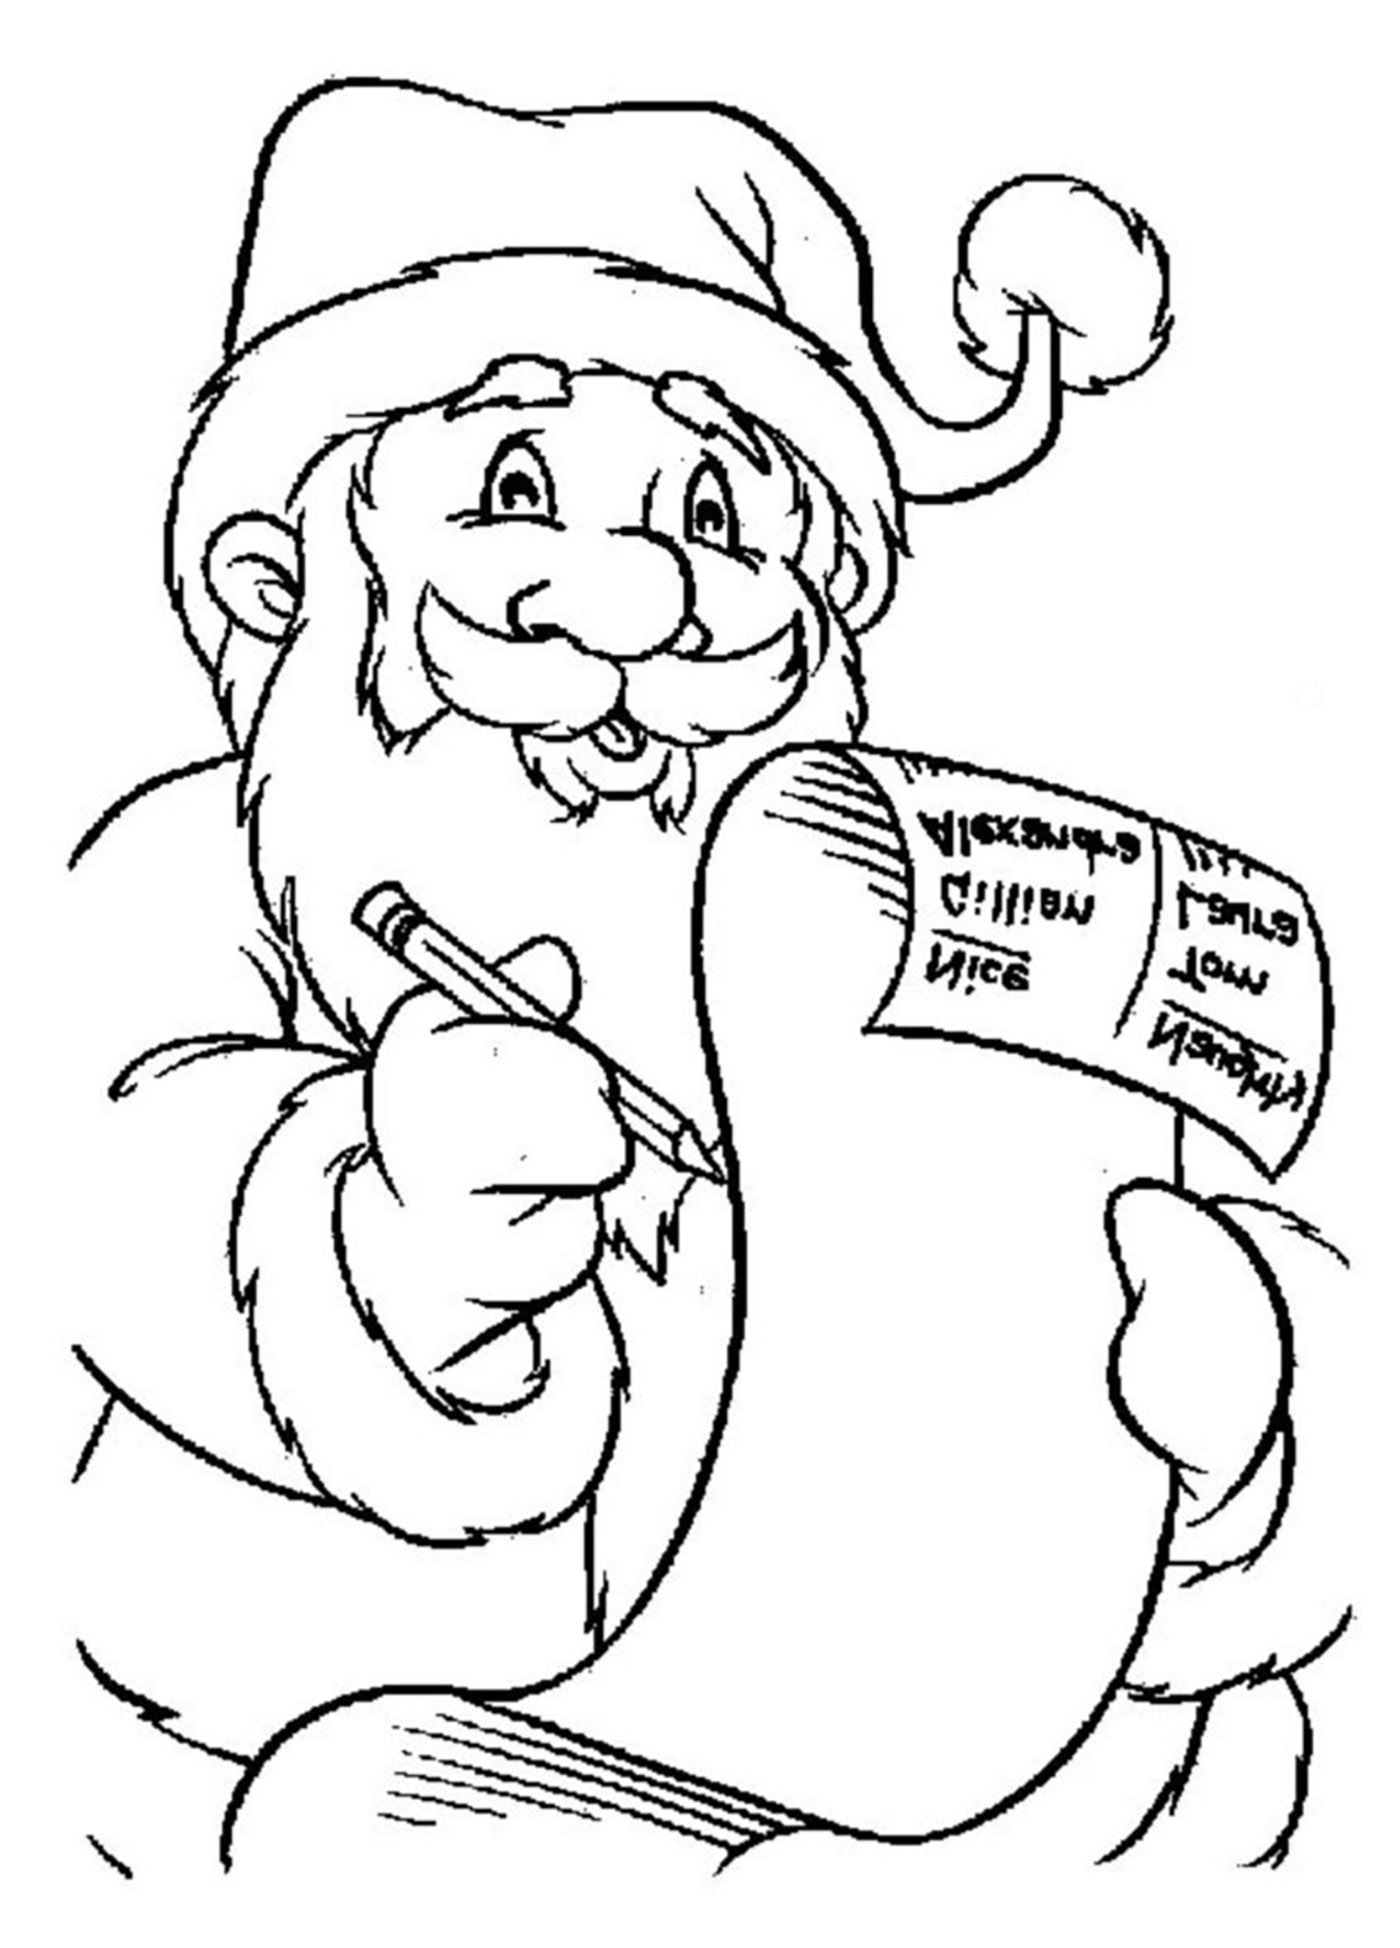 Santa claus letter - Christmas Coloring pages for kids to print & color